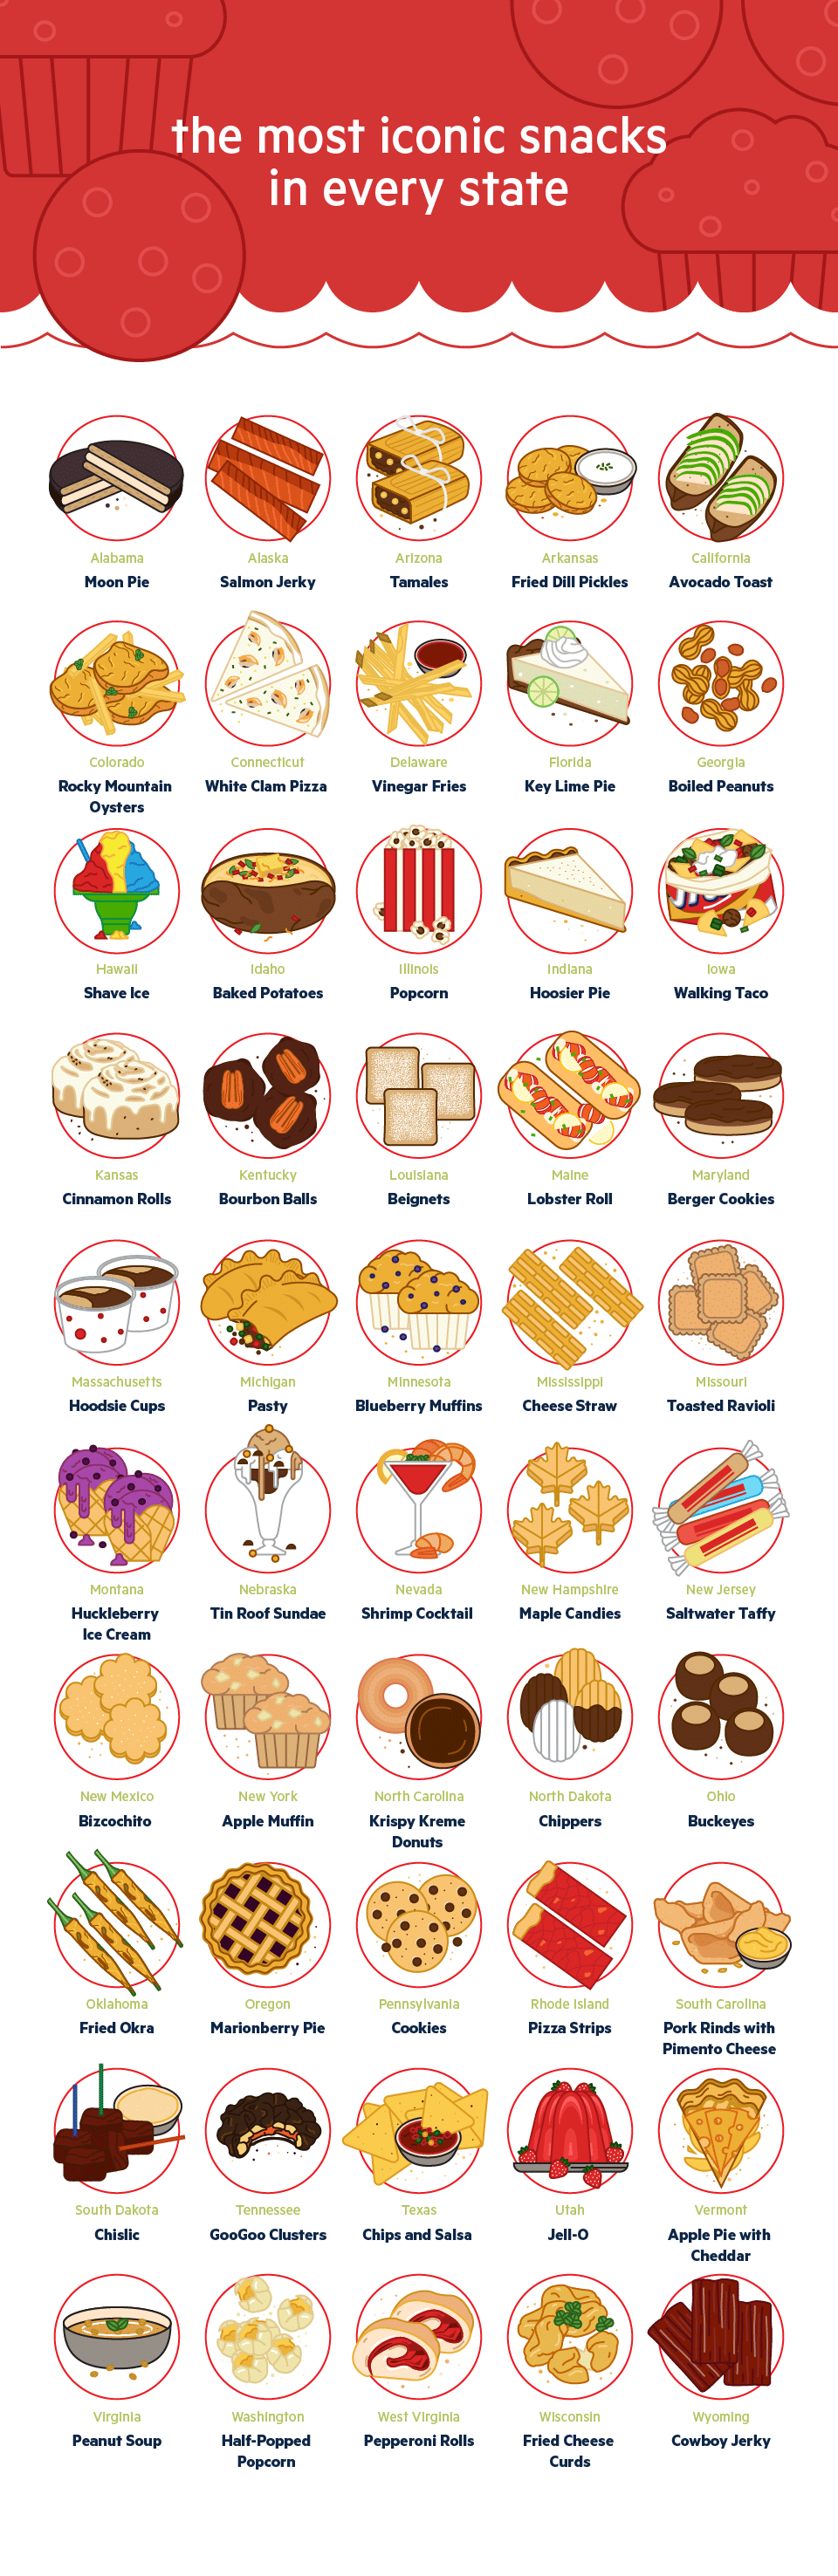 The Most Iconic Snacks In Every State